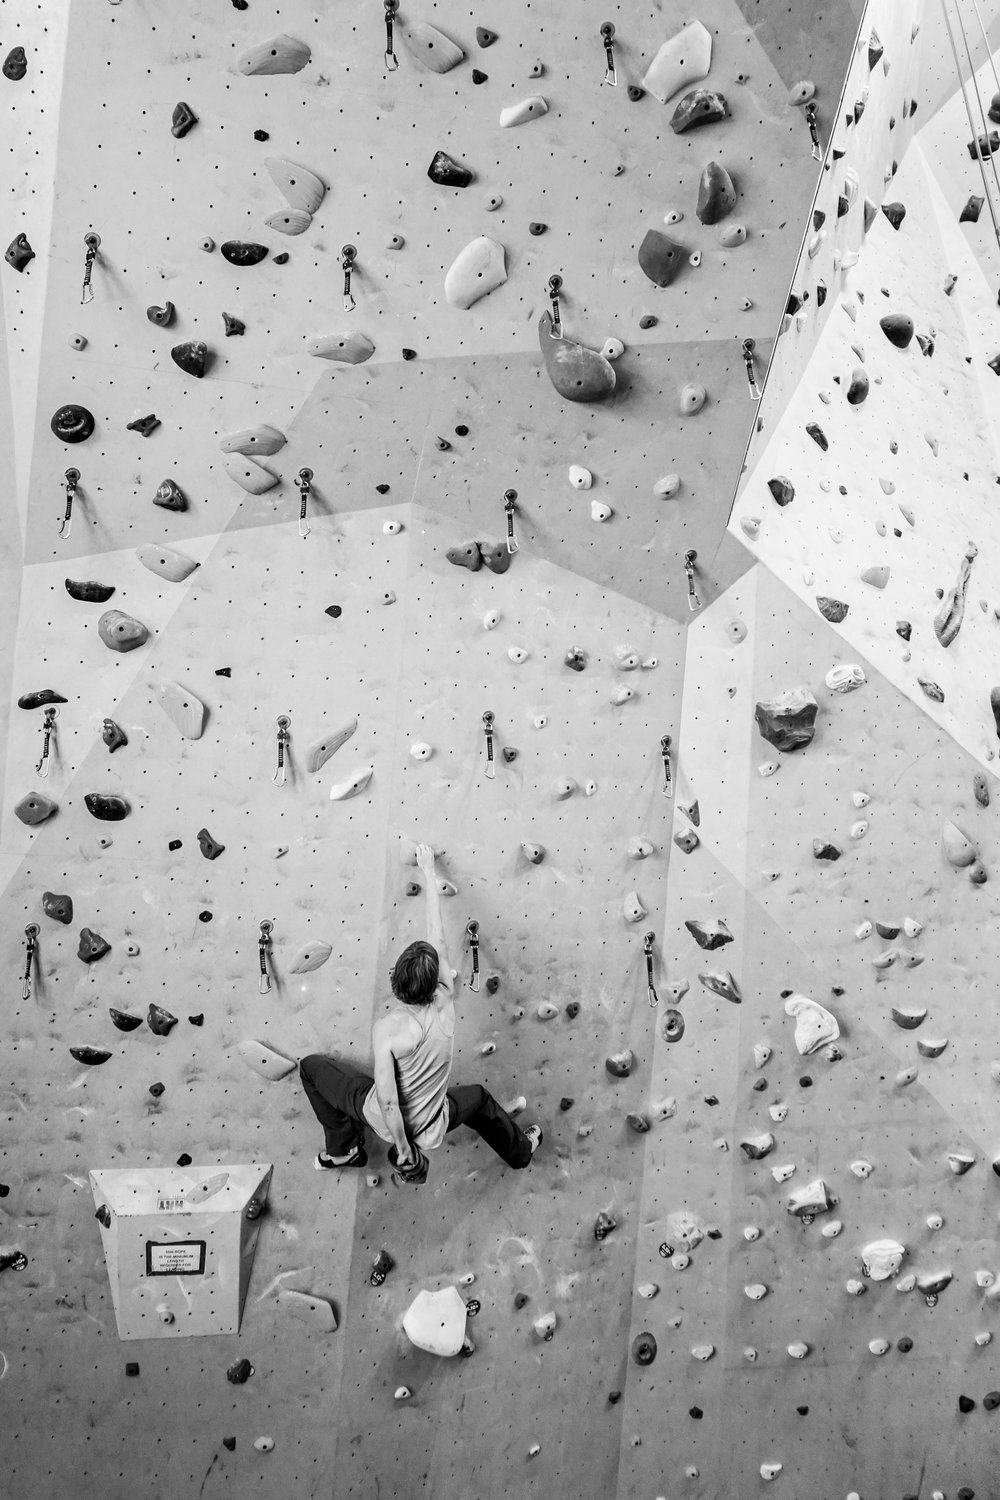 Strong woman climber in her 60s